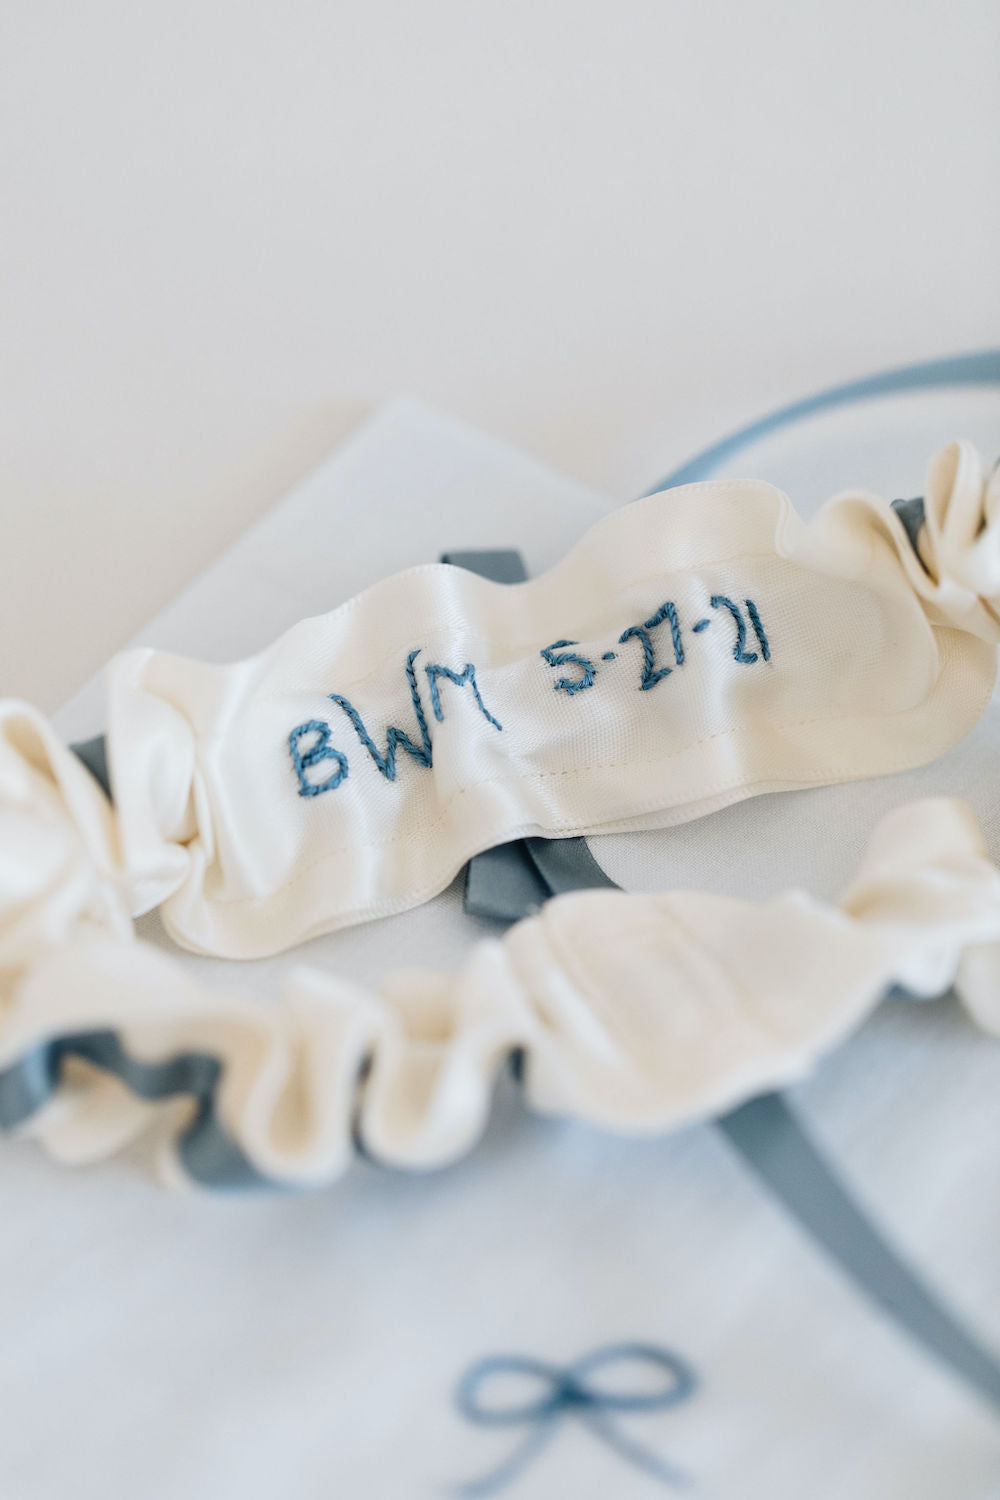 personalized embroidered wedding garter and handkerchief with dusty blue and ivory satin by bridal accessories designer, The Garter Girl